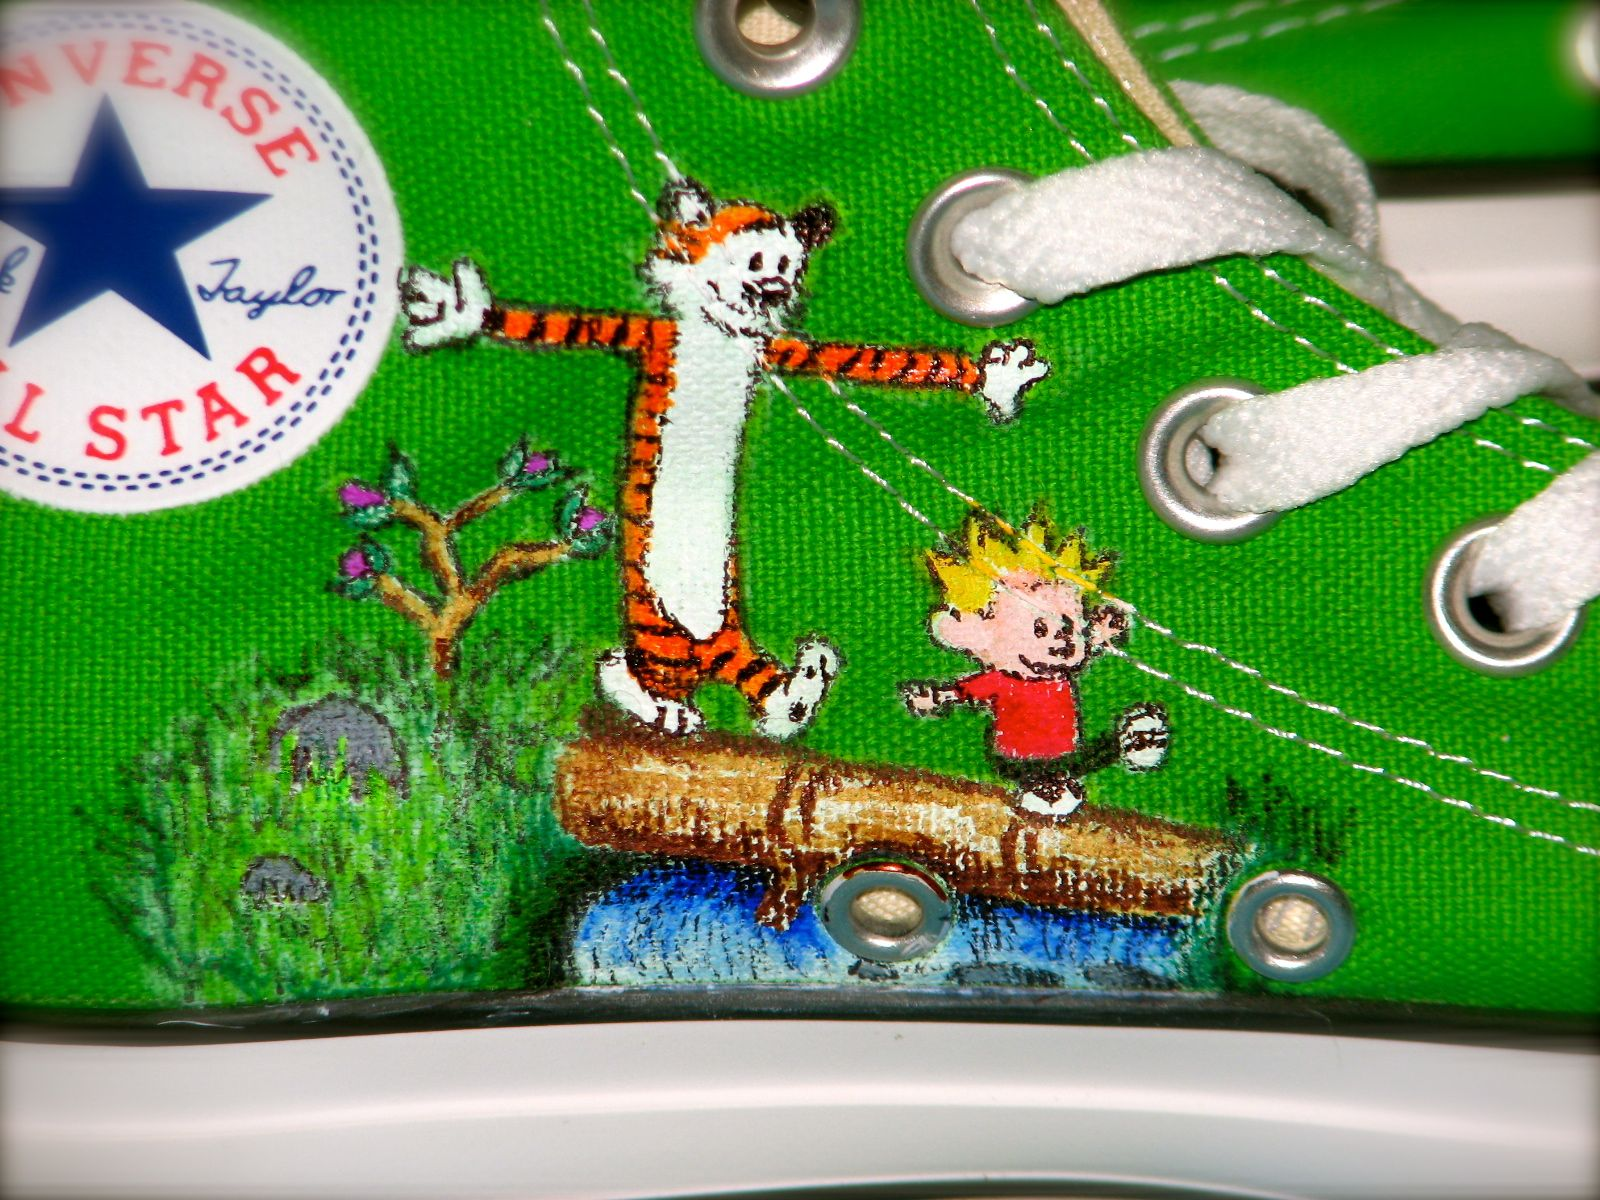 Calvin and hobbes calvin and hobbes lunch box artsy